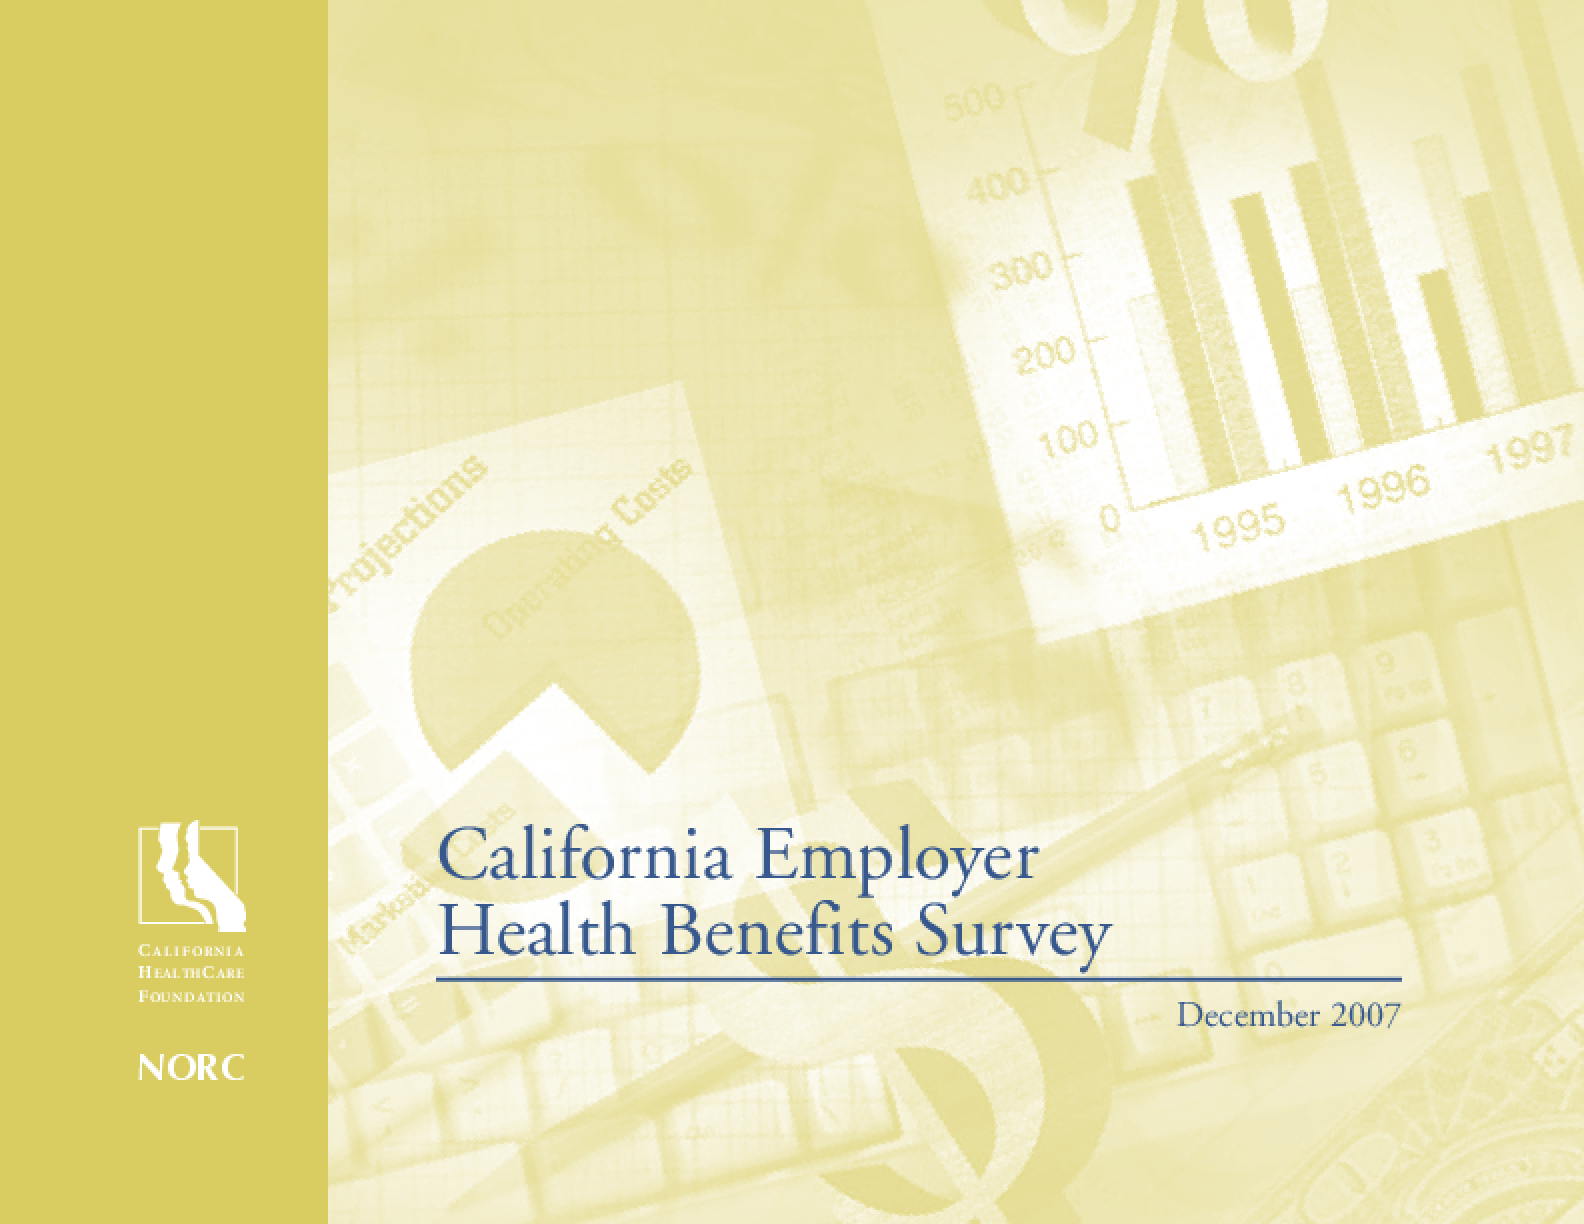 California Employer Health Benefits Survey 2007